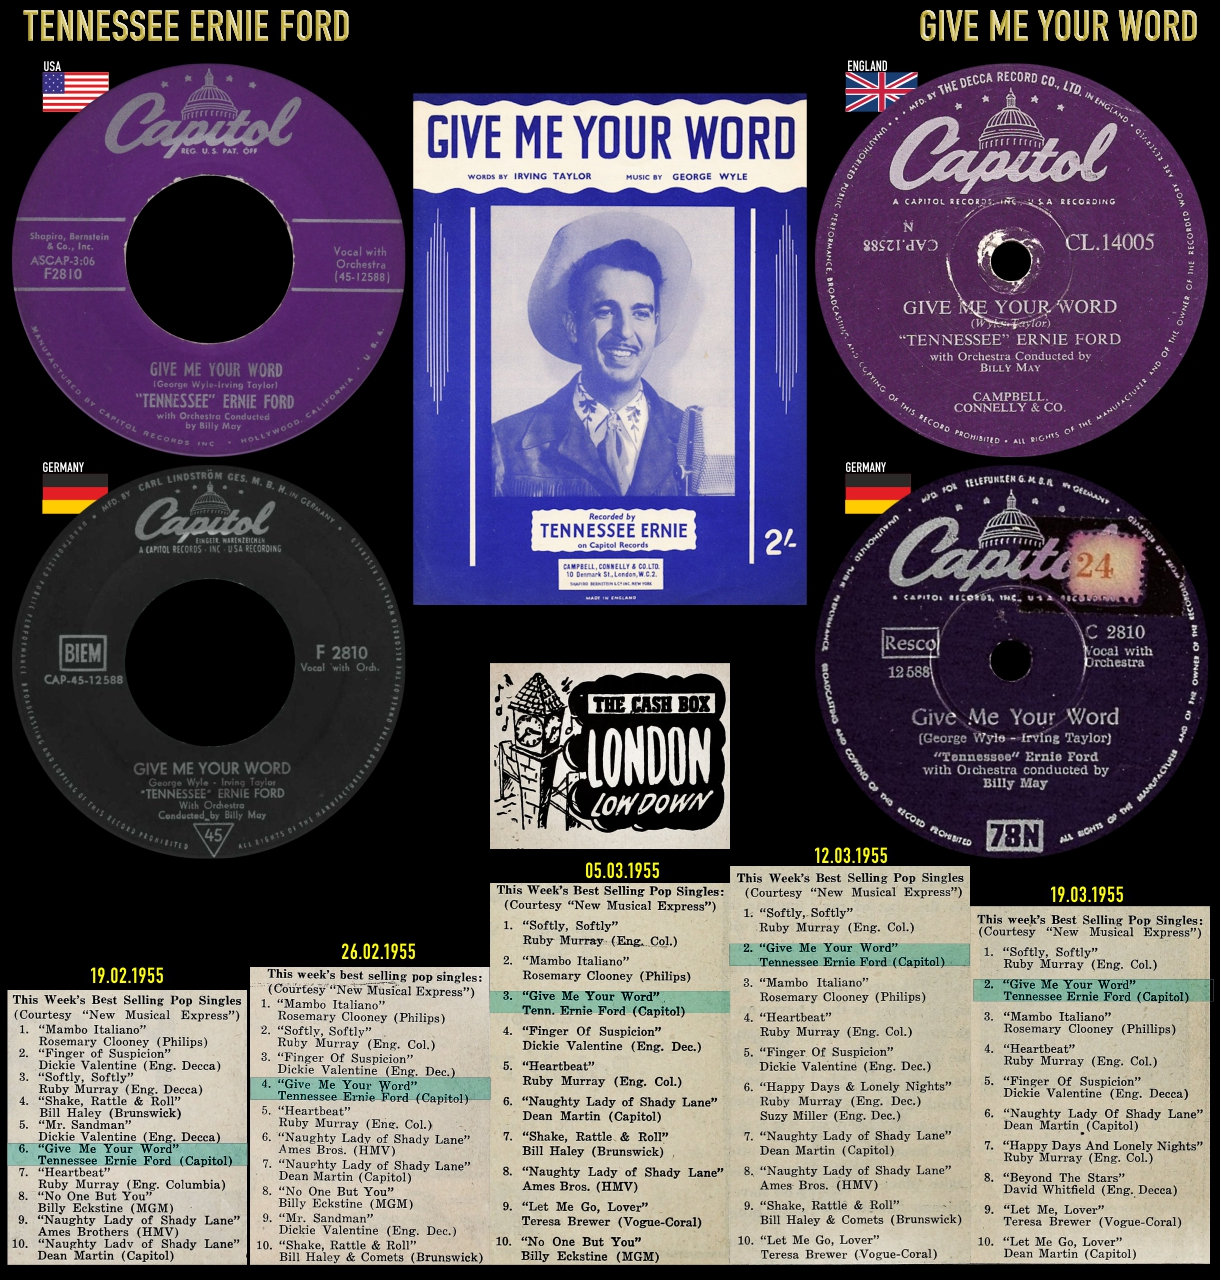 550122_Tennessee Ernie Ford_Give Me Your Word